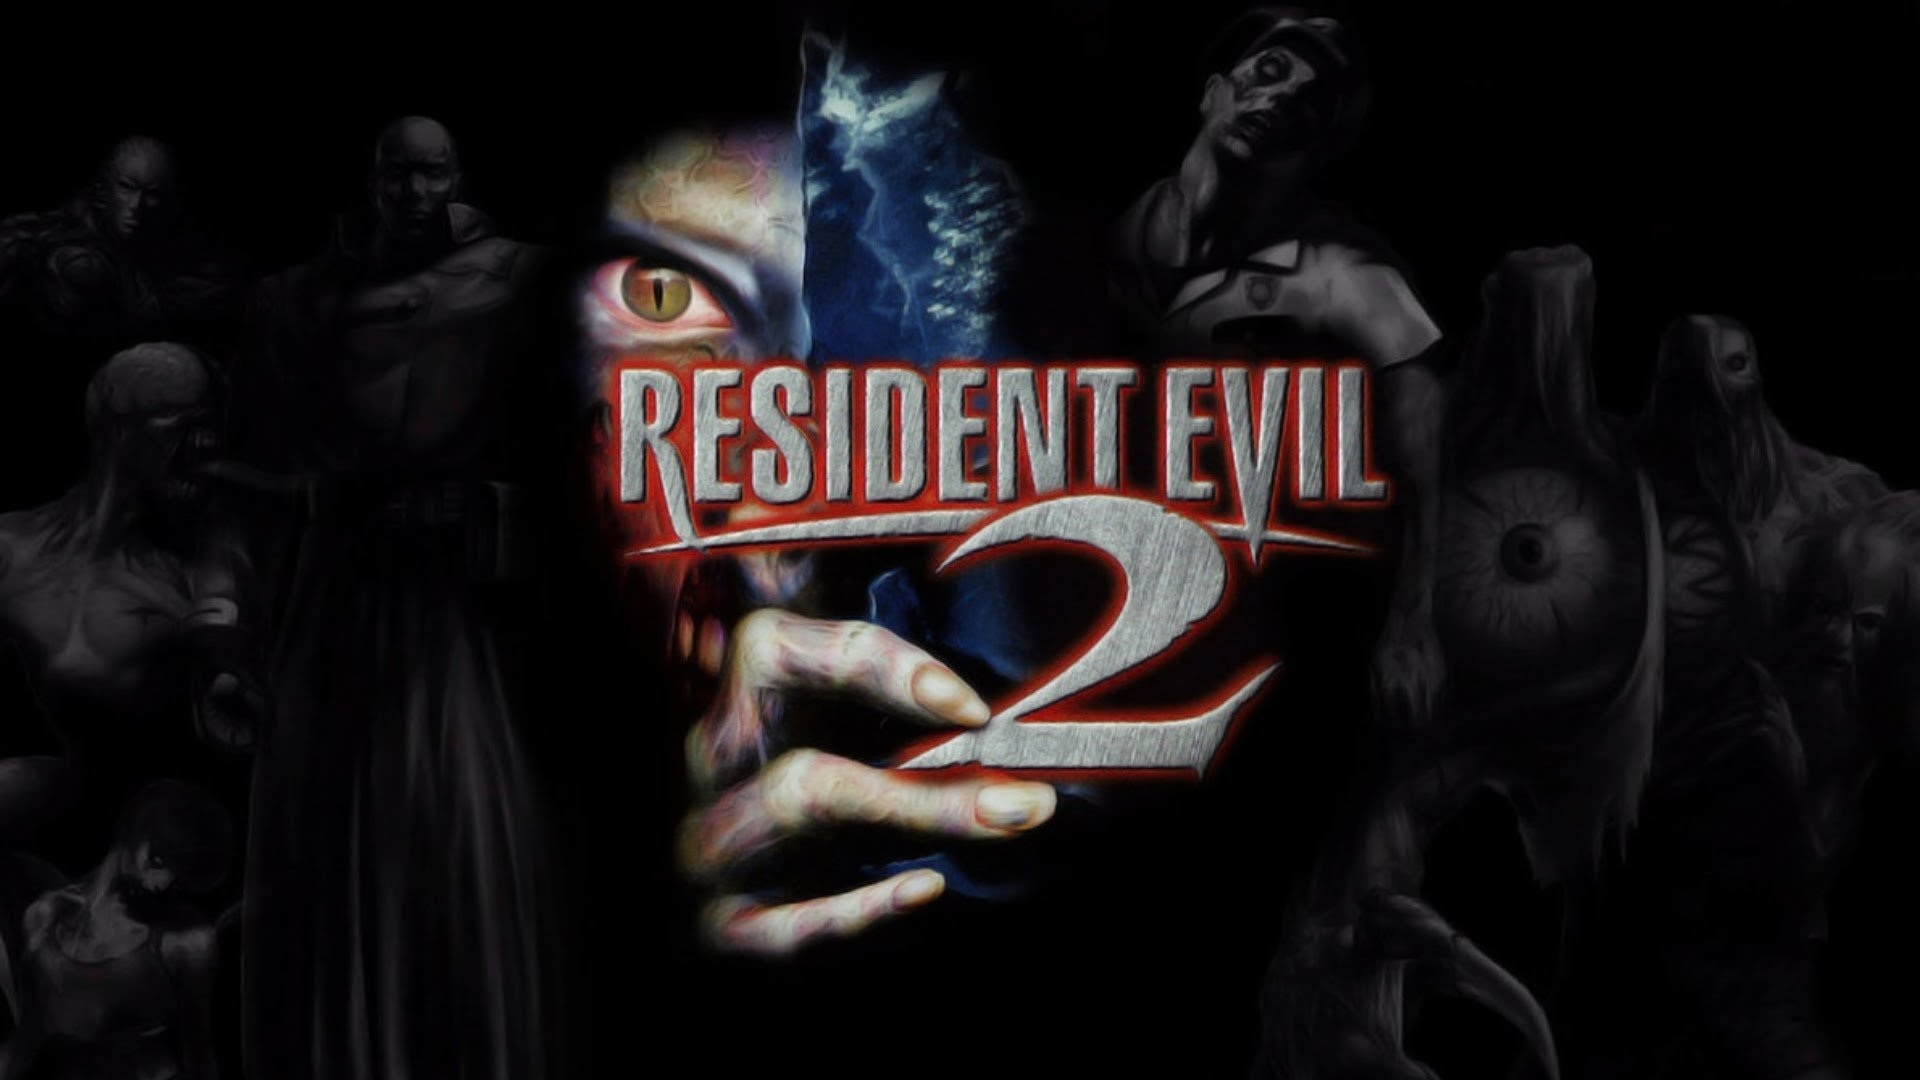 2 resident evil 2 hd wallpapers | background images - wallpaper abyss